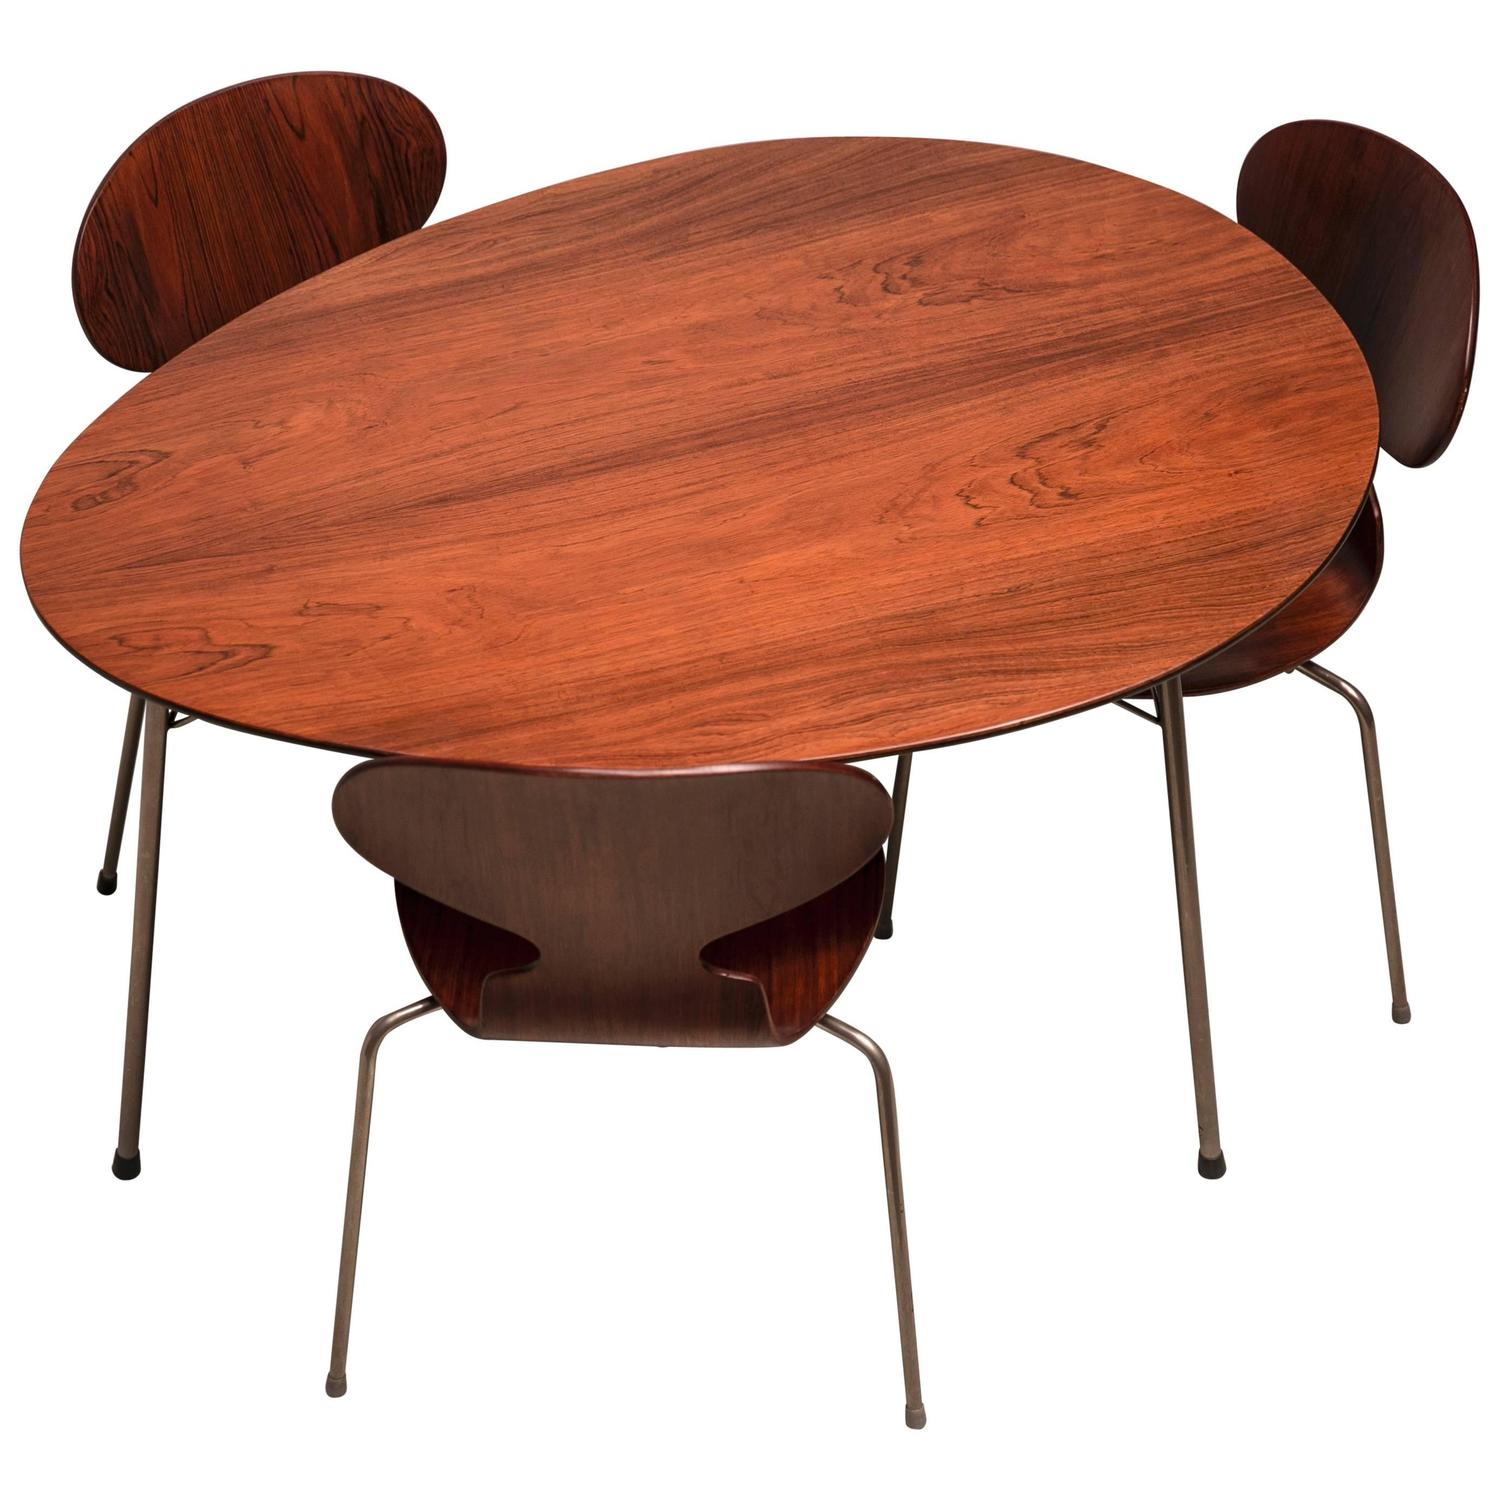 exceptional early brazilian rosewood egg table and ant. Black Bedroom Furniture Sets. Home Design Ideas